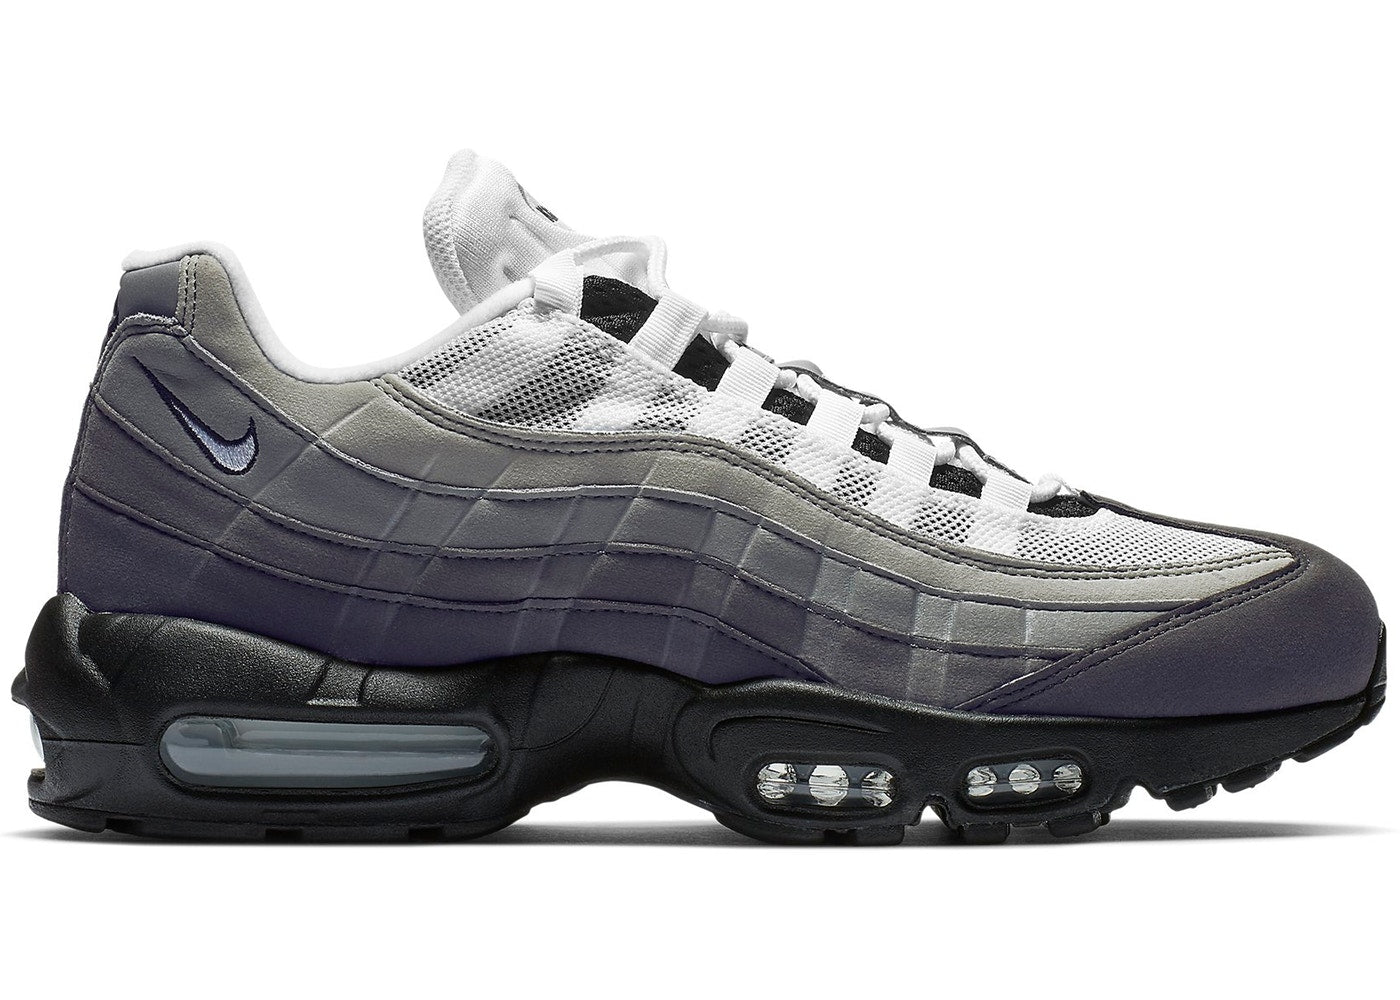 f8aba0a3e8ab39 Details about Mens Nike Air Max 95 OG Grey Gradient Black Anthracite  Granite White AT2865-003